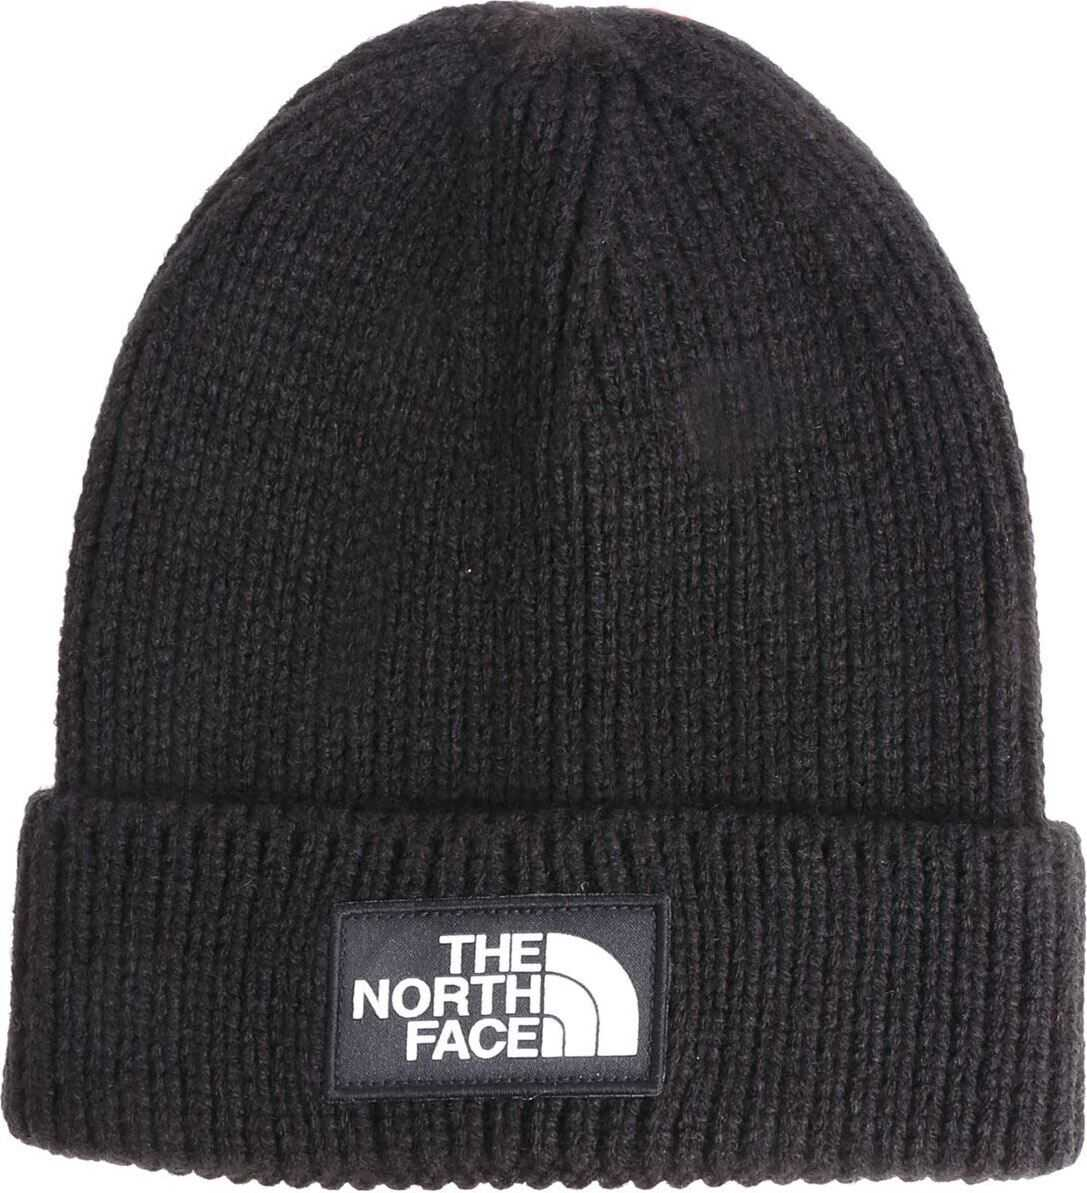 The North Face Black Beanie With Logo Black